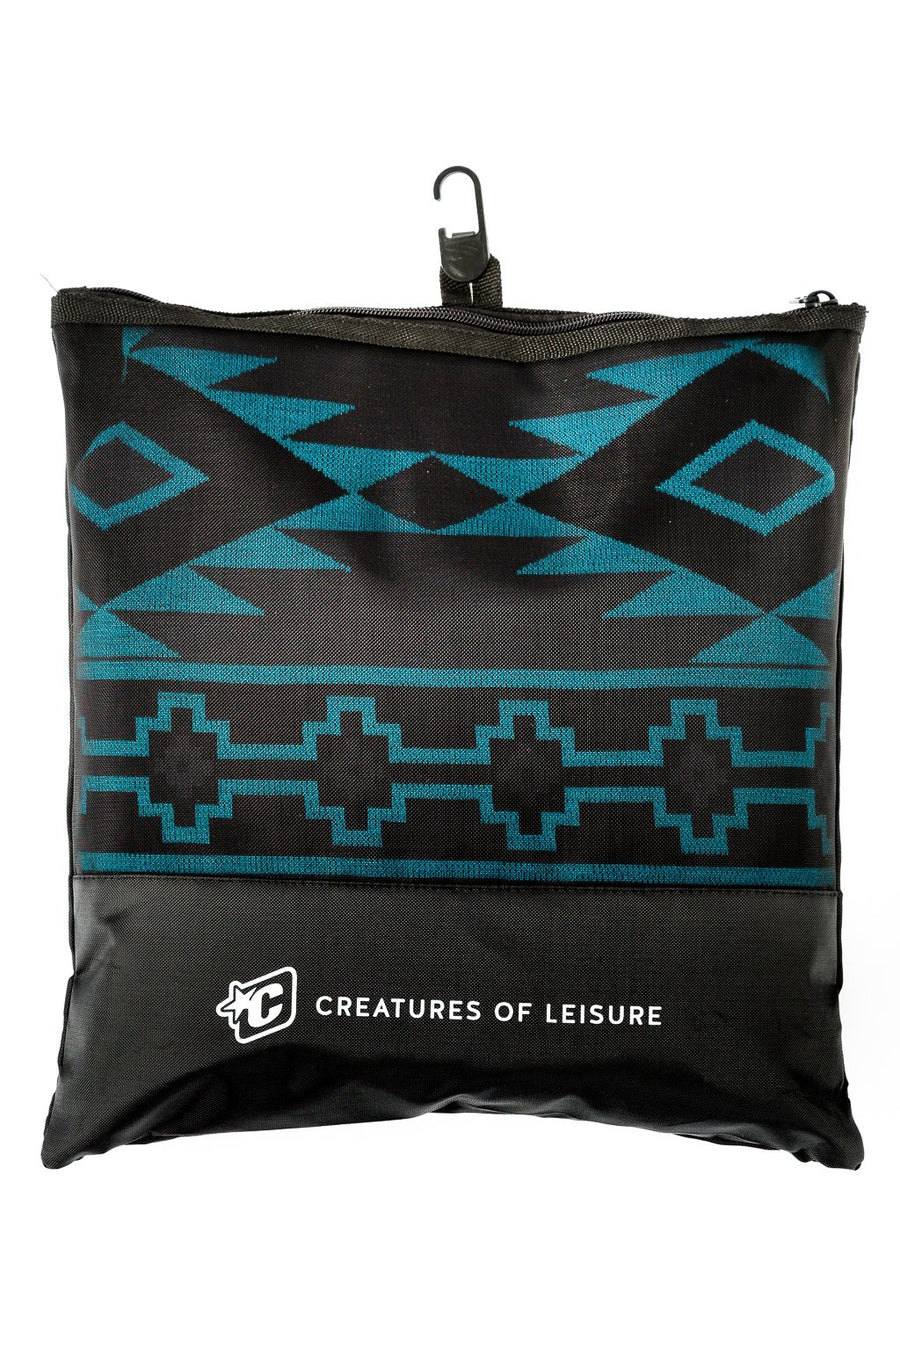 Creatures Of Leisure Longboard Inca Sox - Charcoal Mint Shop HERE